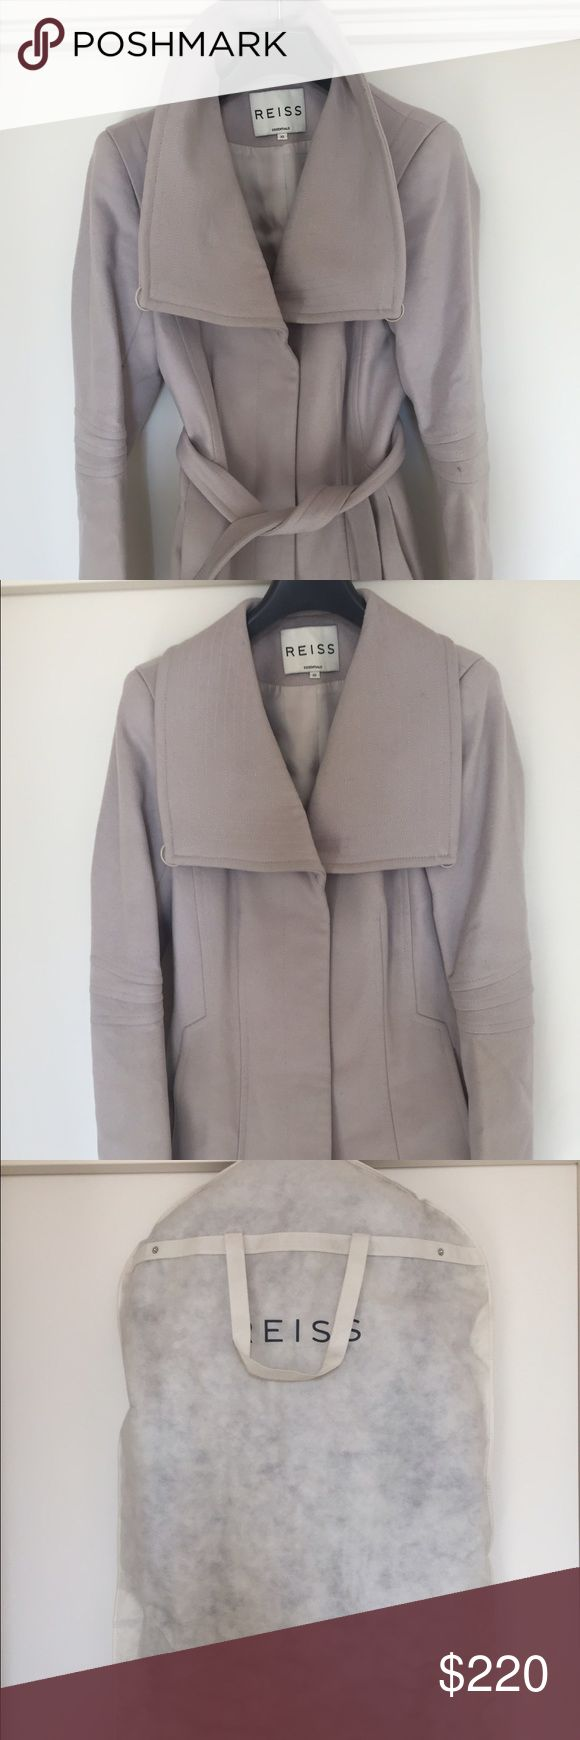 REISS Casper Belted Coat Wool REISS coat/ jacket. Beautiful soft pink color- wrap at waist style with gorgeous details on the arms and shoulders. Worn a moderate amount of times. Comes with original dust bag from REISS Reiss Jackets & Coats